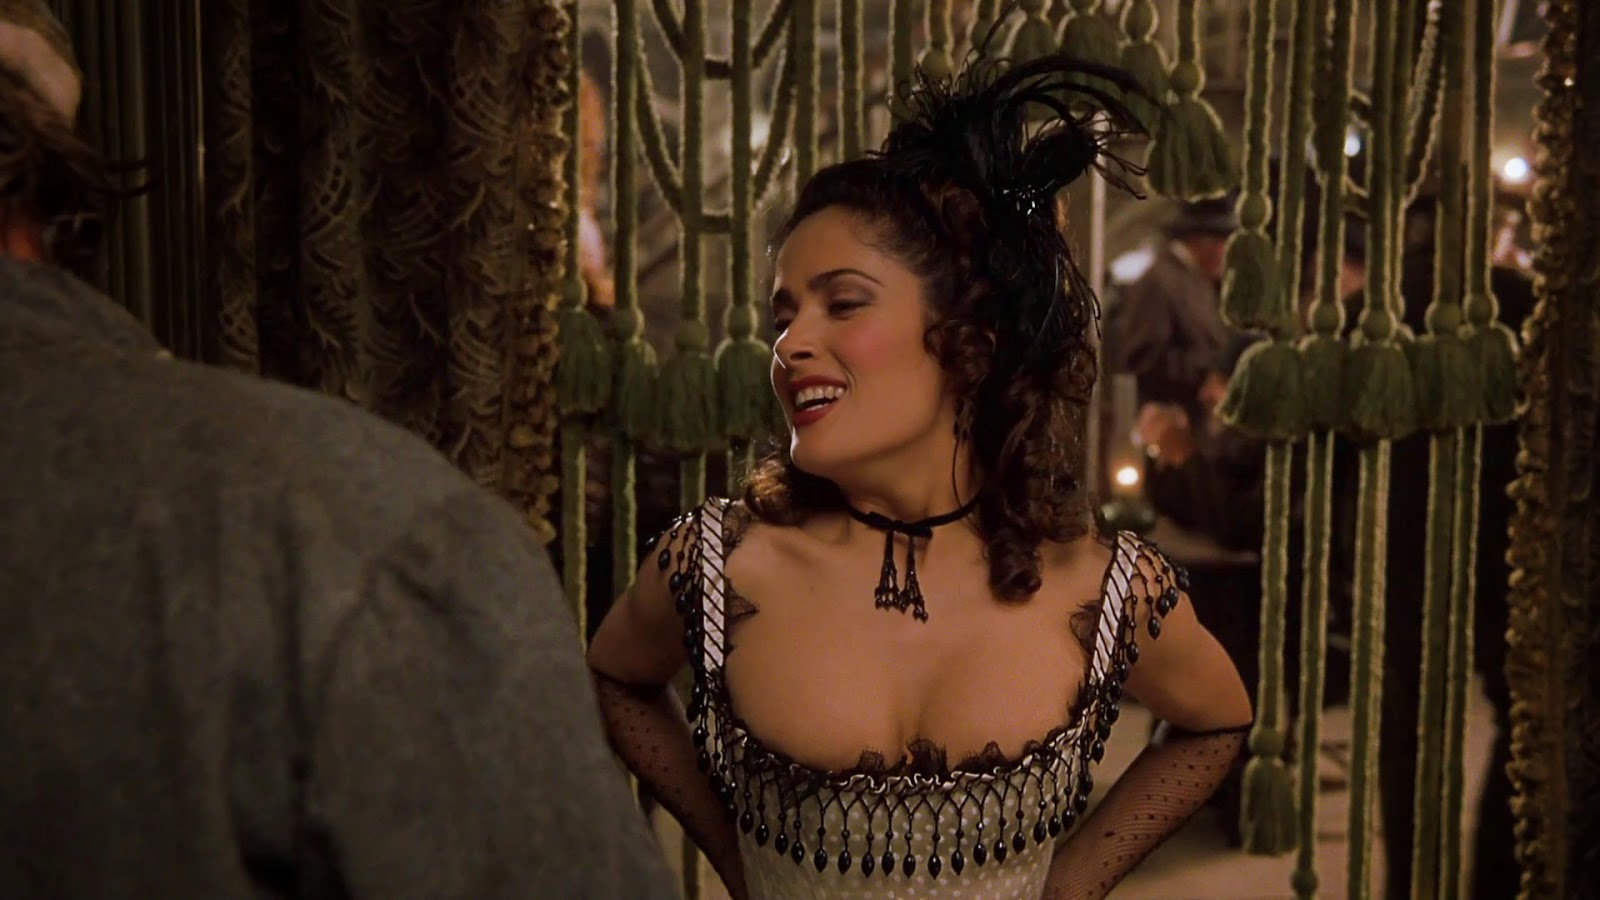 salma hayek naked or nude in movies